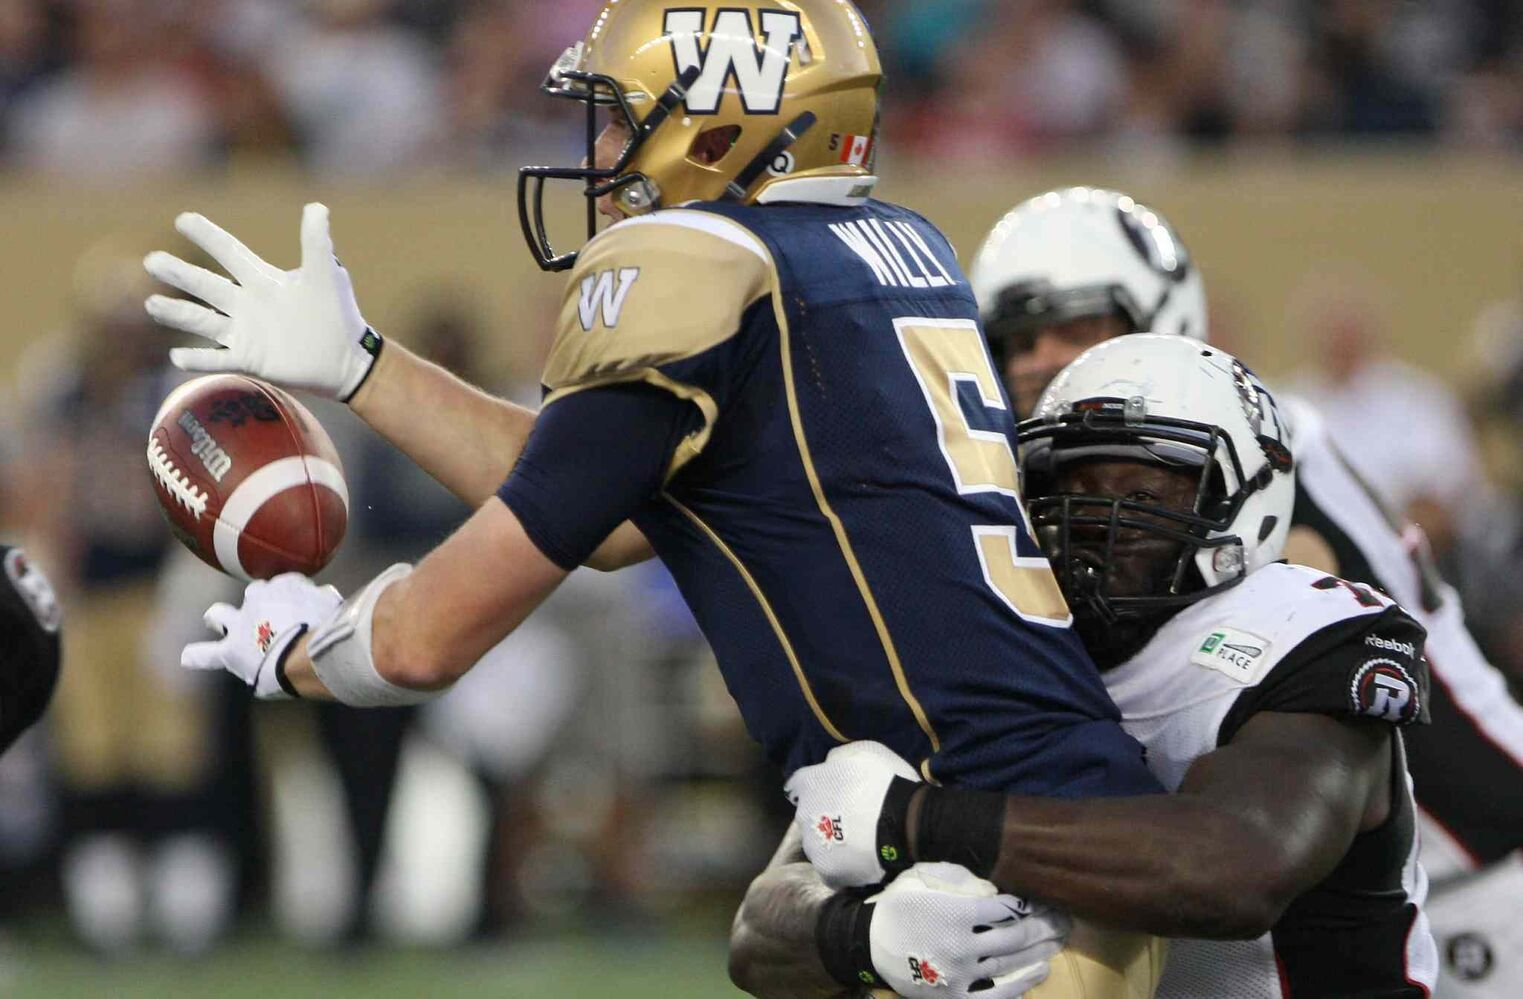 Winnipeg Blue Bombers' quarterback Drew Willy takes a big hit from Ottawa Redblacks' Jonathan Williams during the second half of Thursday's game. (JOE BRYKSA / WINNIPEG FREE PRESS)